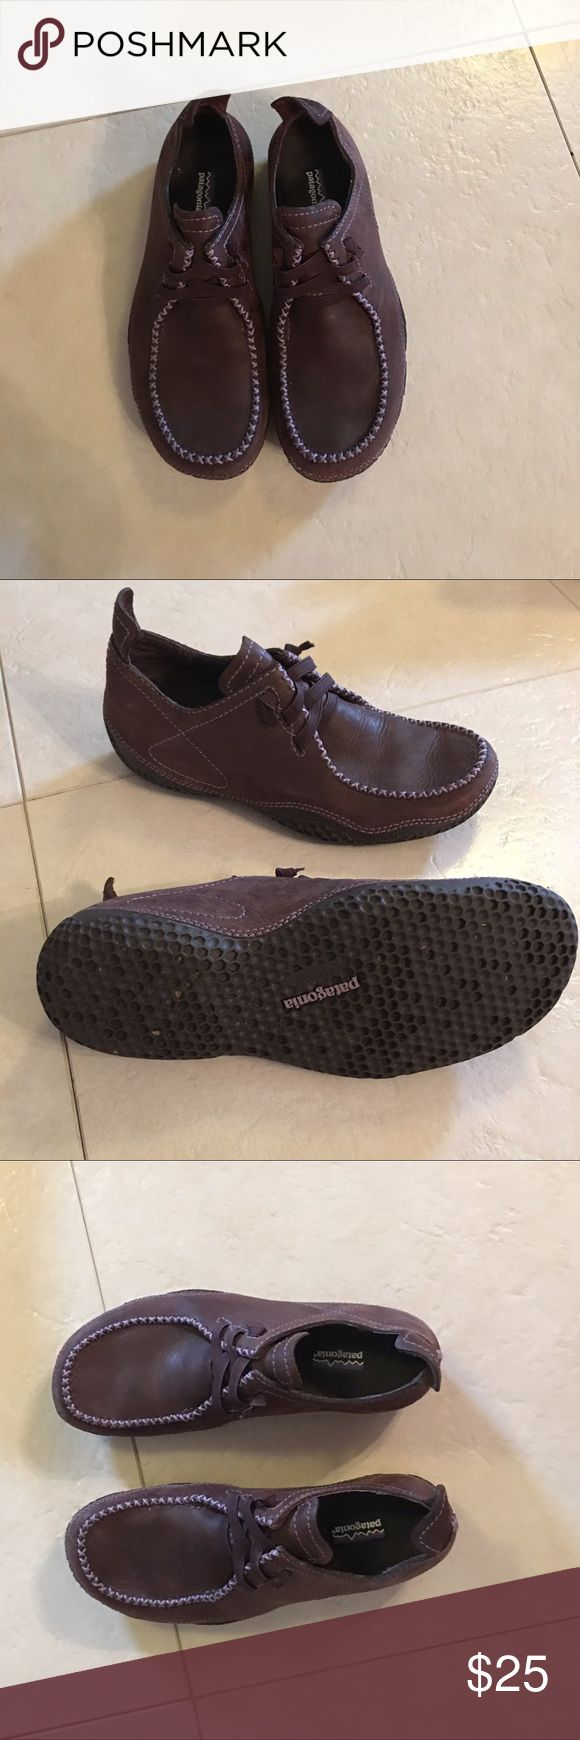 Patagonia Size 6 shoes Brown w/purple detail Size 6 Patagonia shoes. brown with purple detail. Slip on. Worn only a few times. Excellent condition. Patagonia Shoes